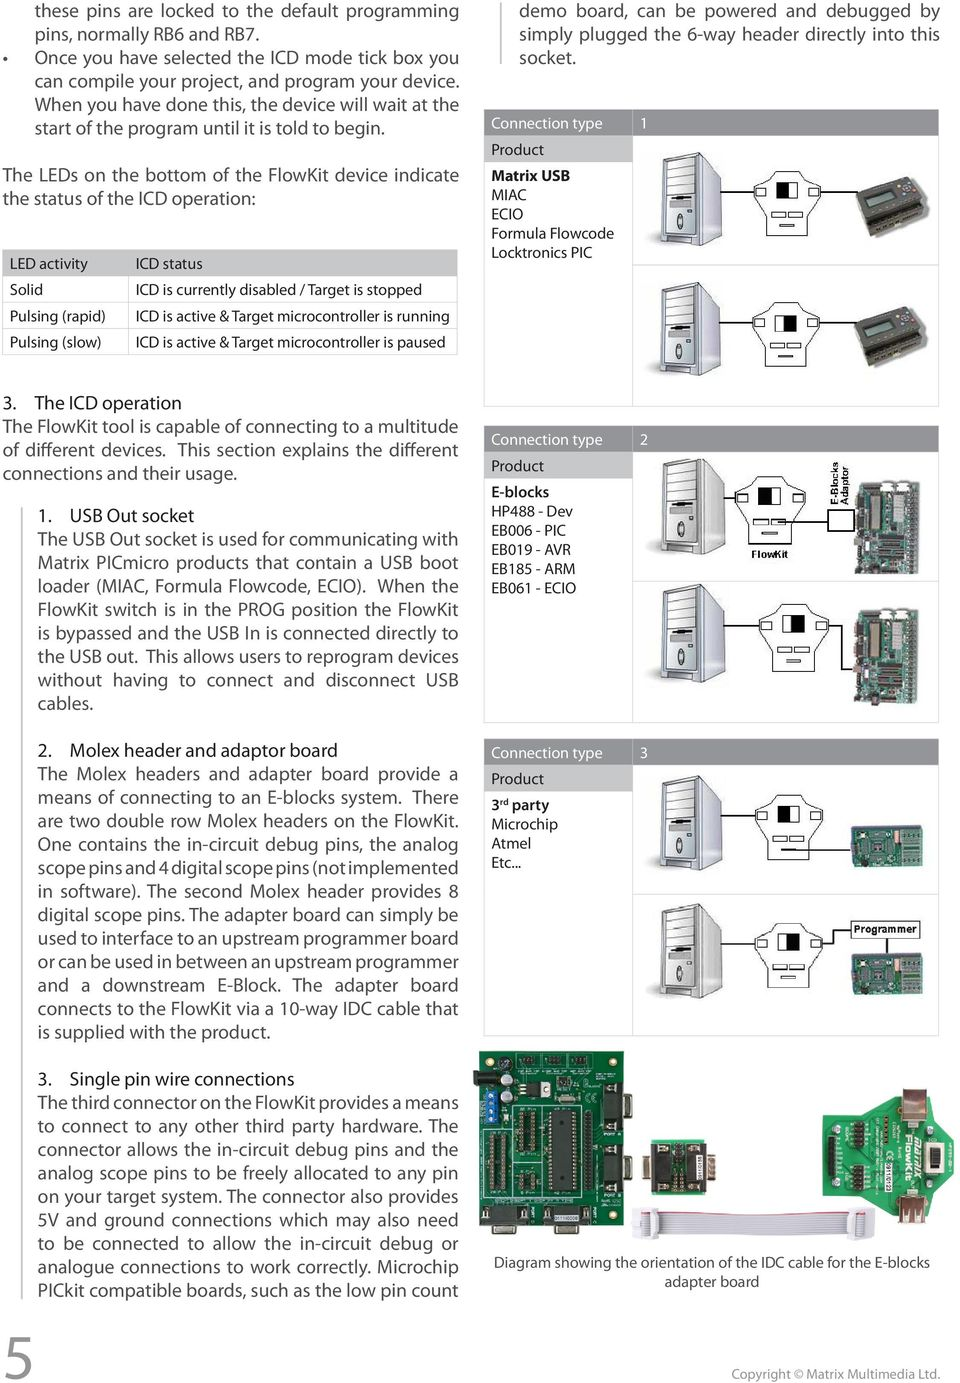 Flowkit In Circuit Debug System Pdf Atmel Usb Programmer Zif Socket Usbasp Atmega8 4 The Leds On Bottom Of Device Indicate Status Icd Operation